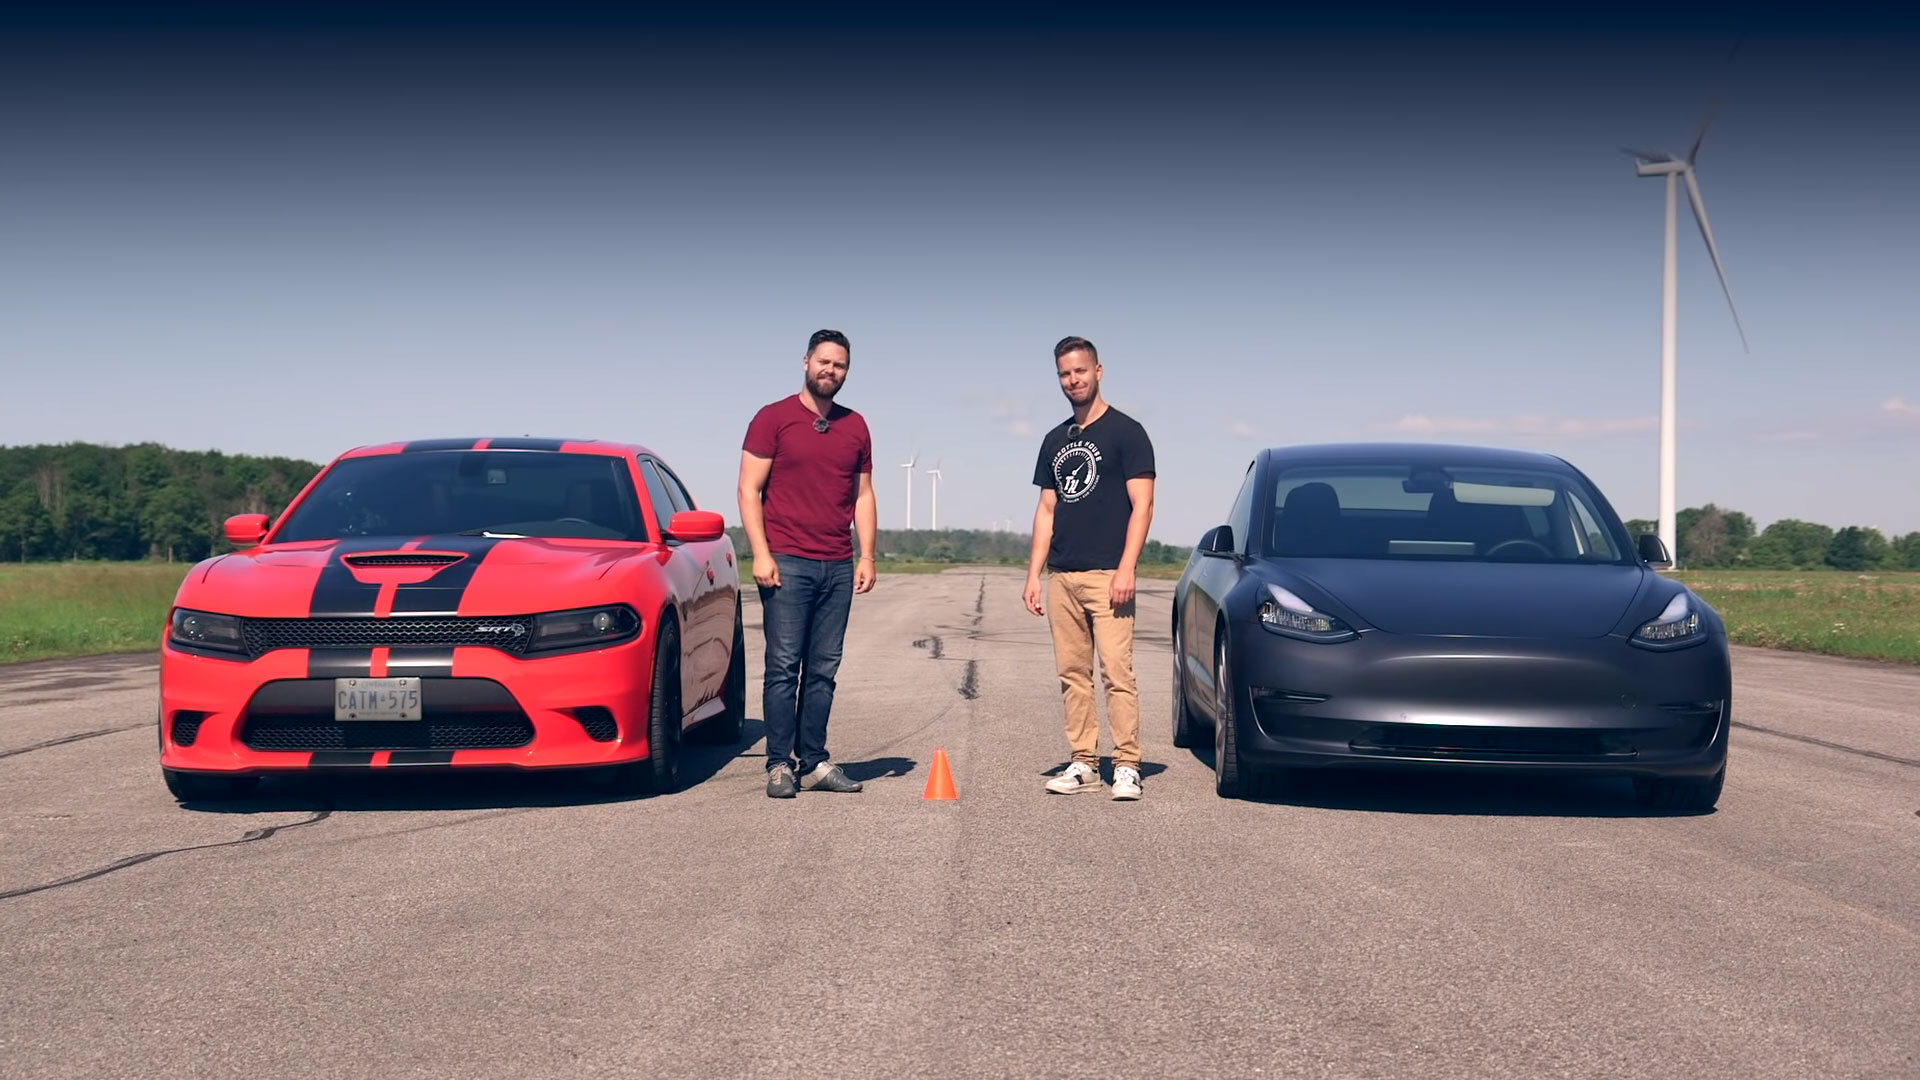 Tesla Model 3 Performance and Dodge Challenger SRT Hellcat ready for the drag race.